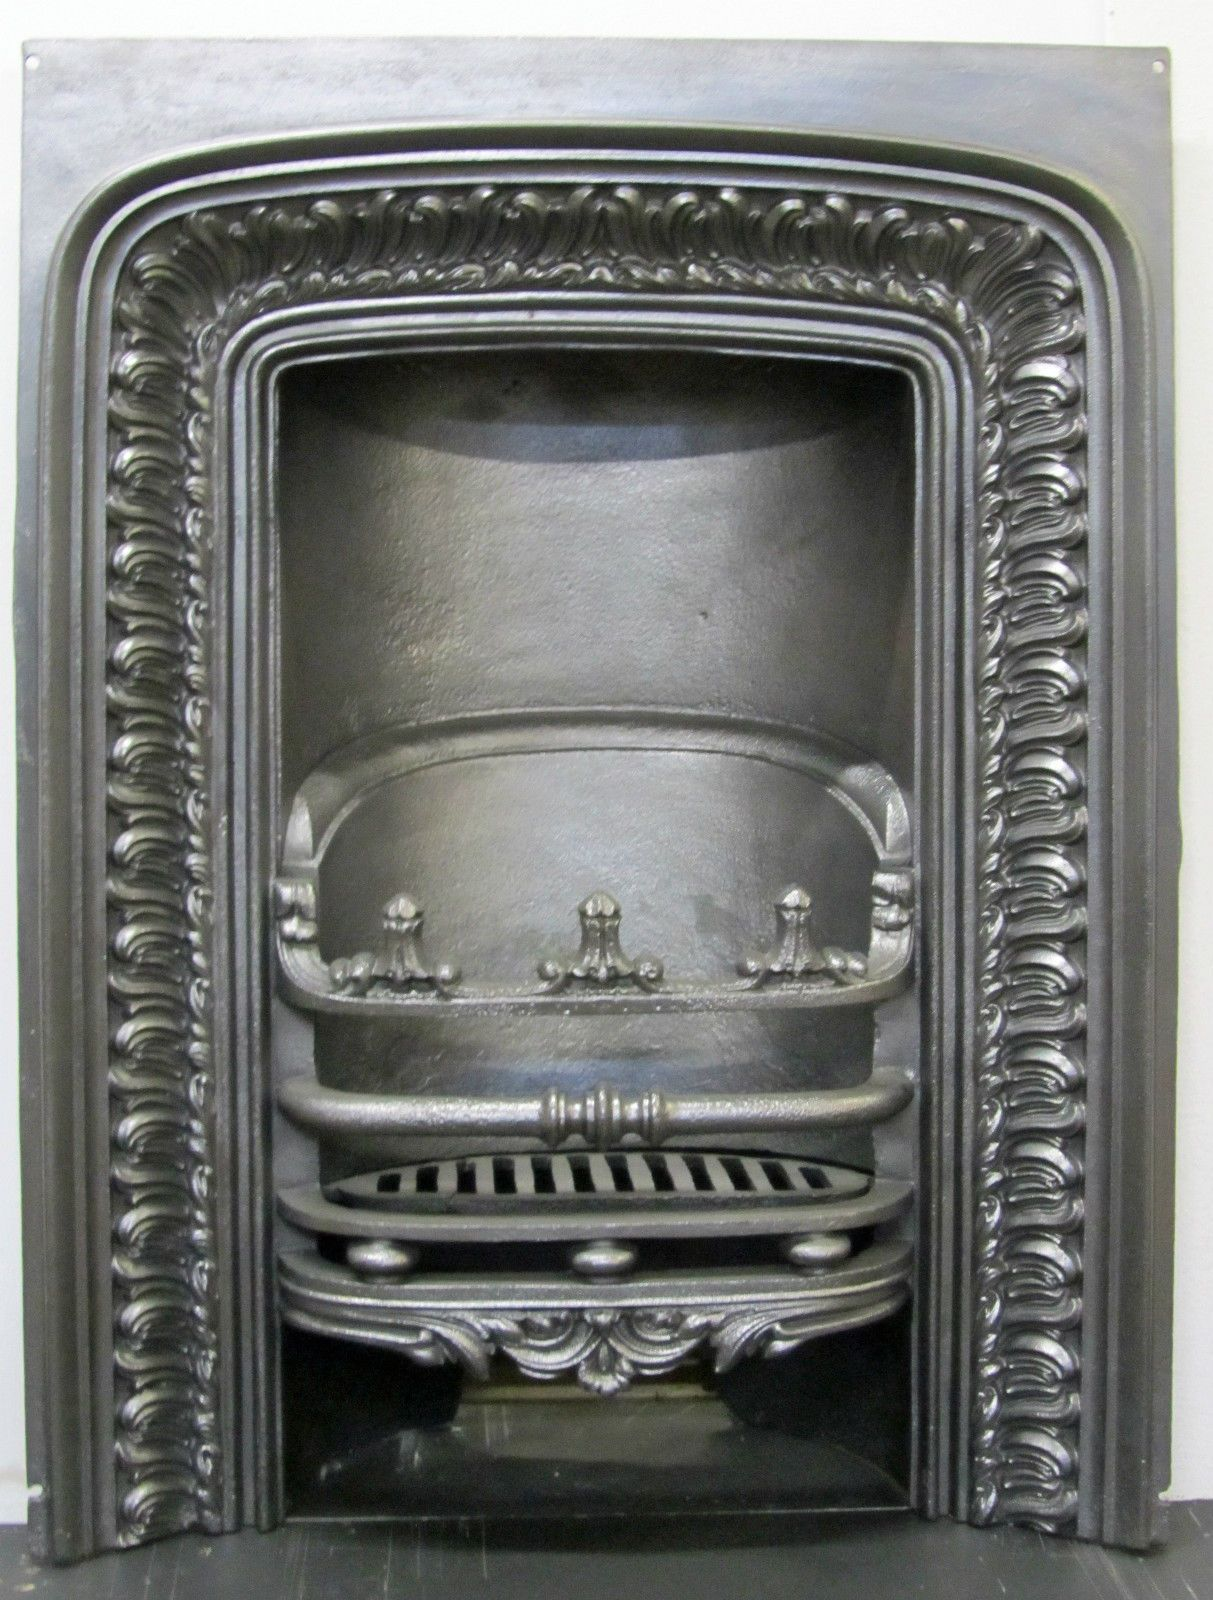 Decorative Antique Victorian Cast Iron Insert Fireplace Antique Fireplace Surround Antique Fireplace